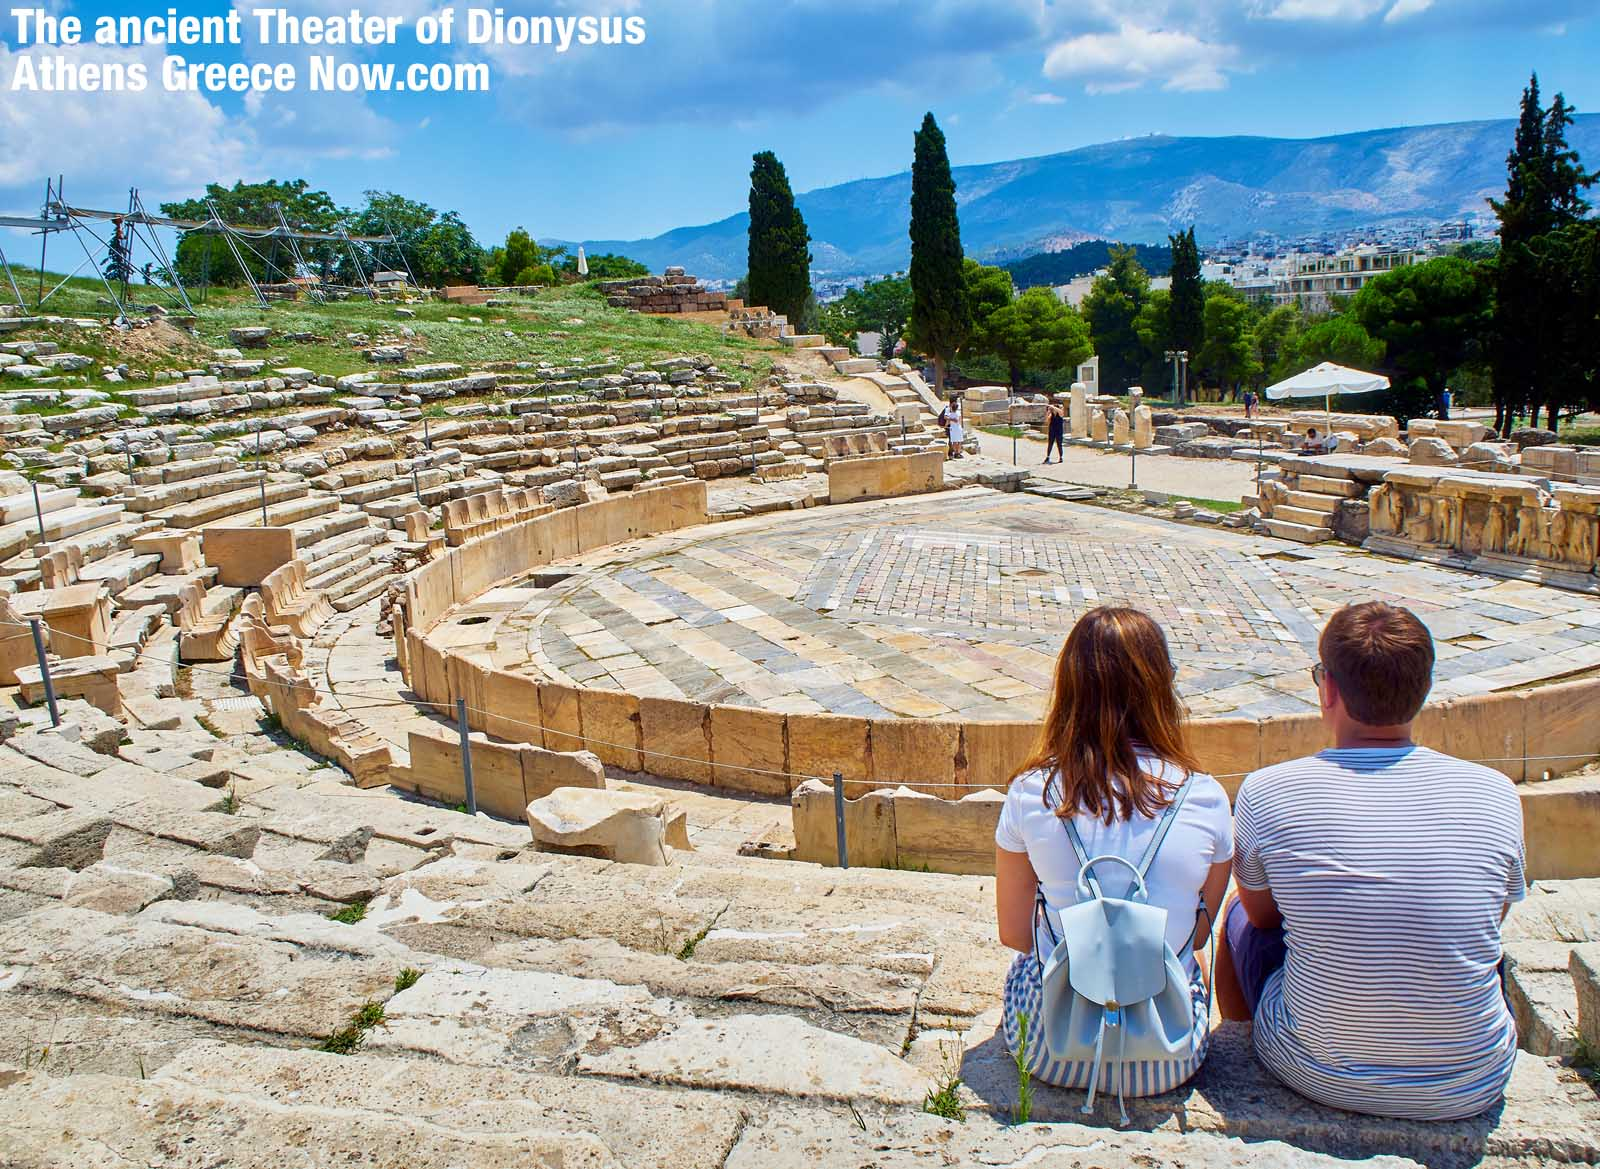 Enlarged - Ancient Greek Theater of Dionysus below the Acropolis in Athens Greece